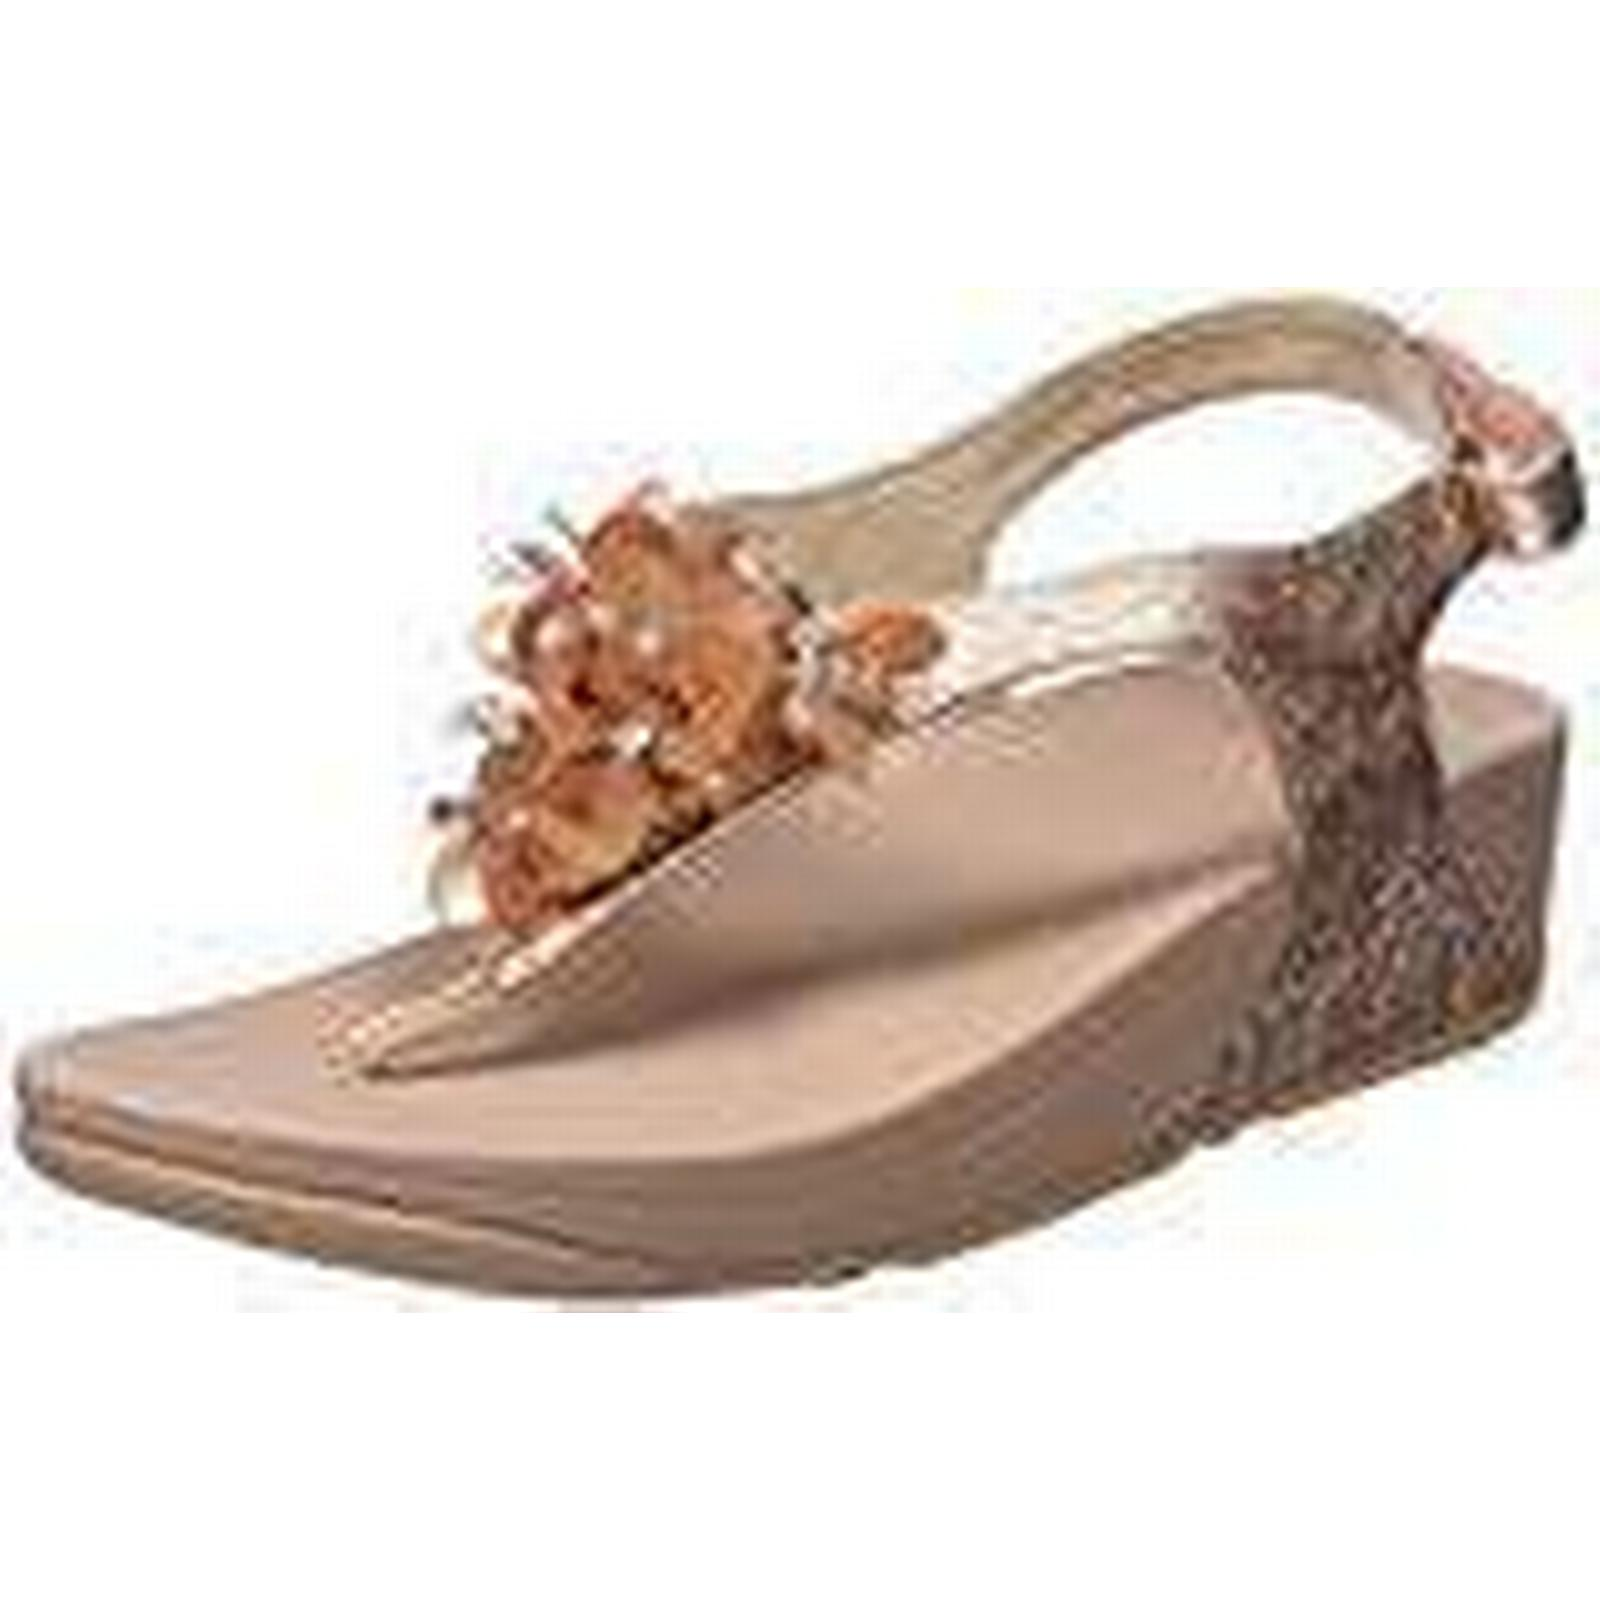 Fitflop Fit Flop Women's Boogaloo Tm Back Strap Sandal Flip, 6.5 Pink (Rose Gold 323), 6.5 Flip, UK 6.5 UK cccfcc